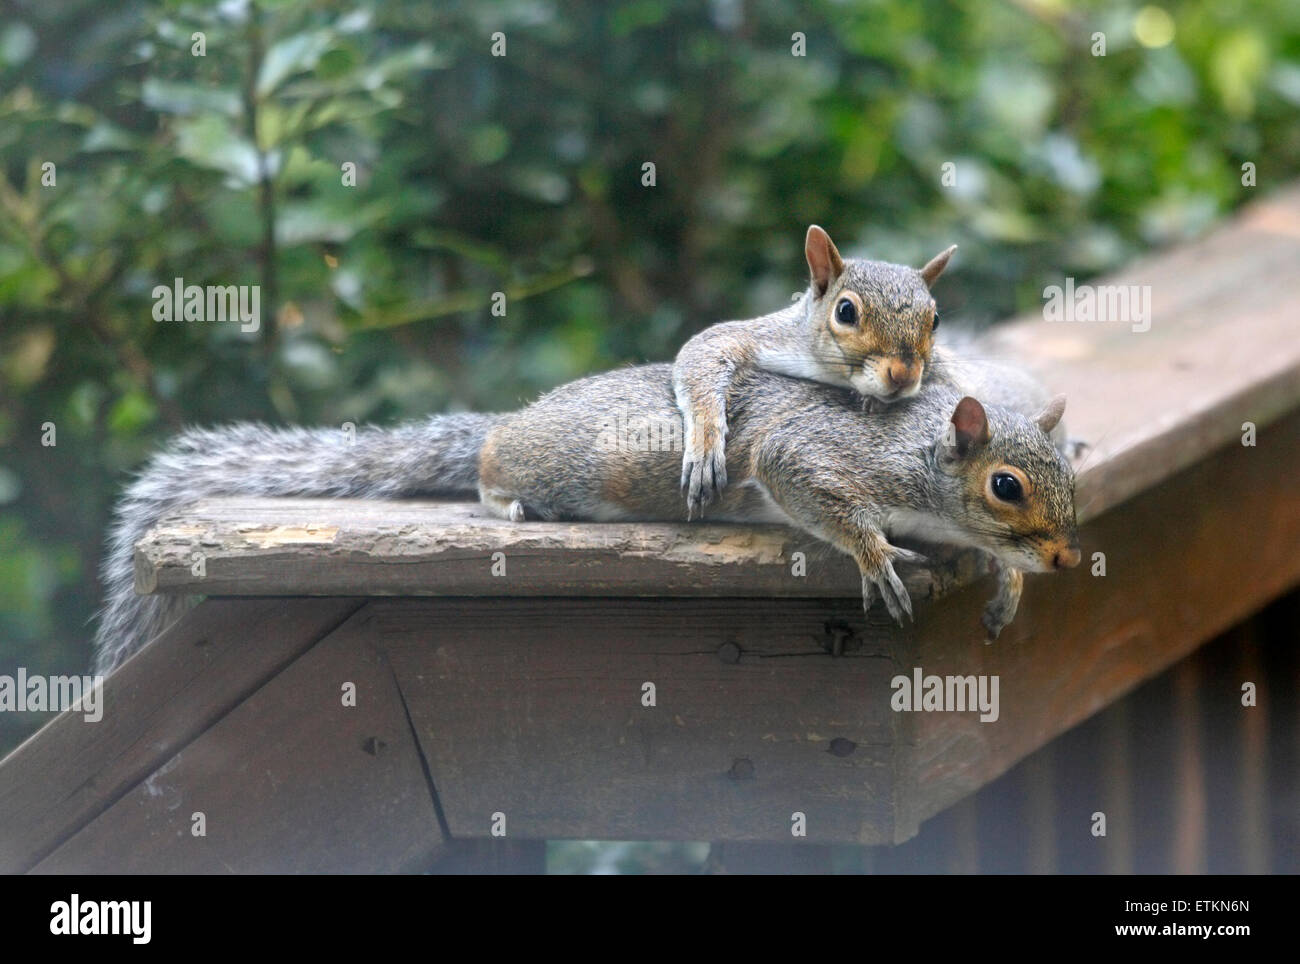 Eastern grey gray squirrels (Sciurus carolinensis) laying together on deck rail. Stock Photo